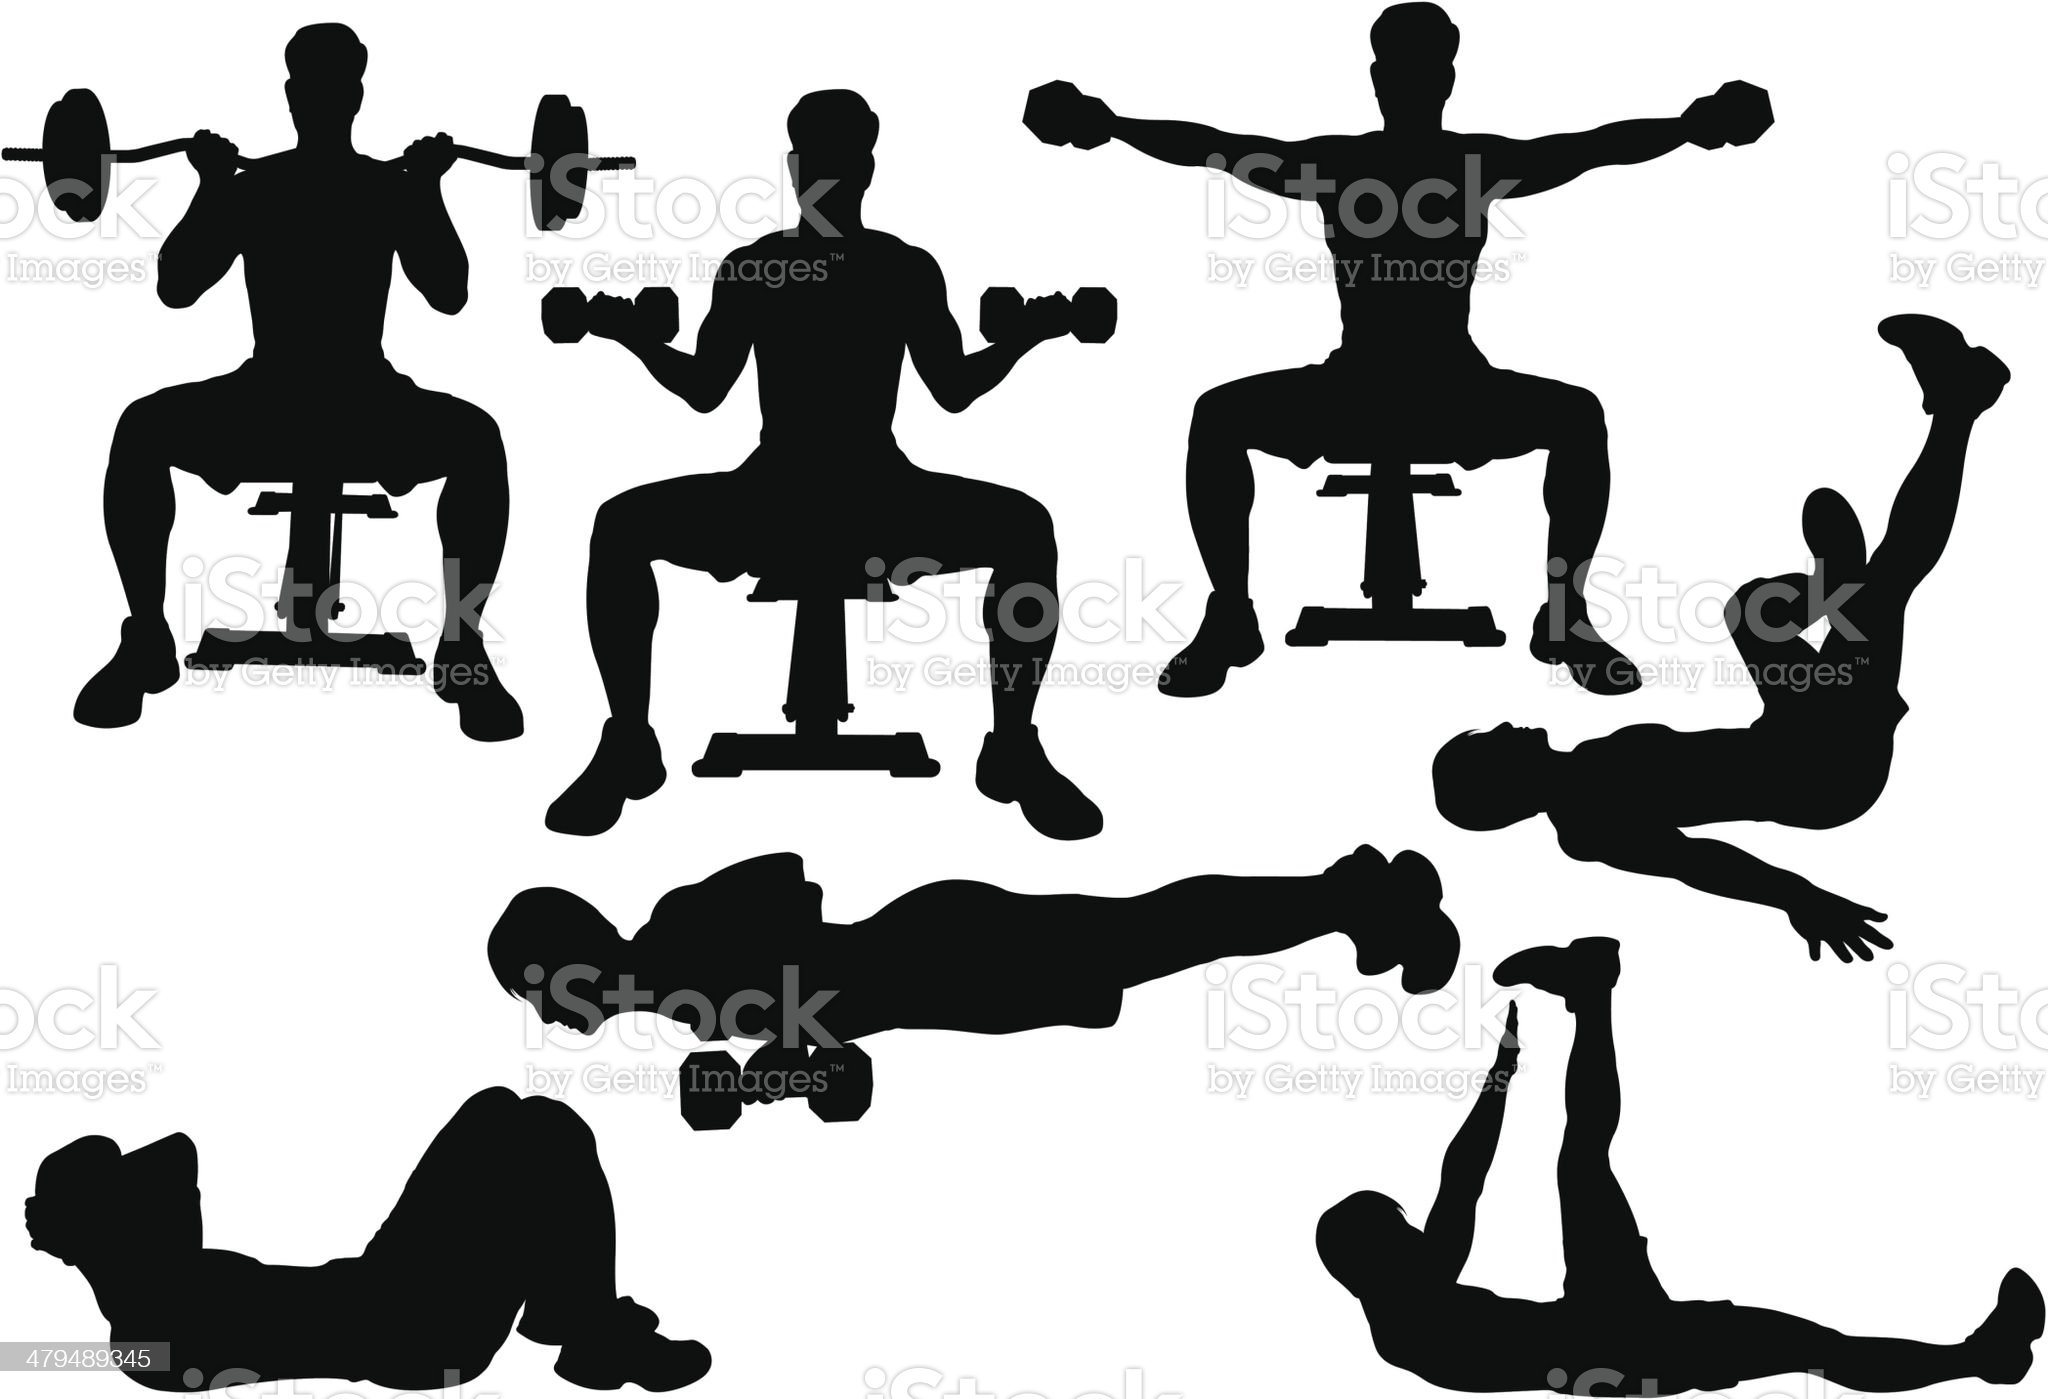 Workout Silhouette royalty-free stock vector art